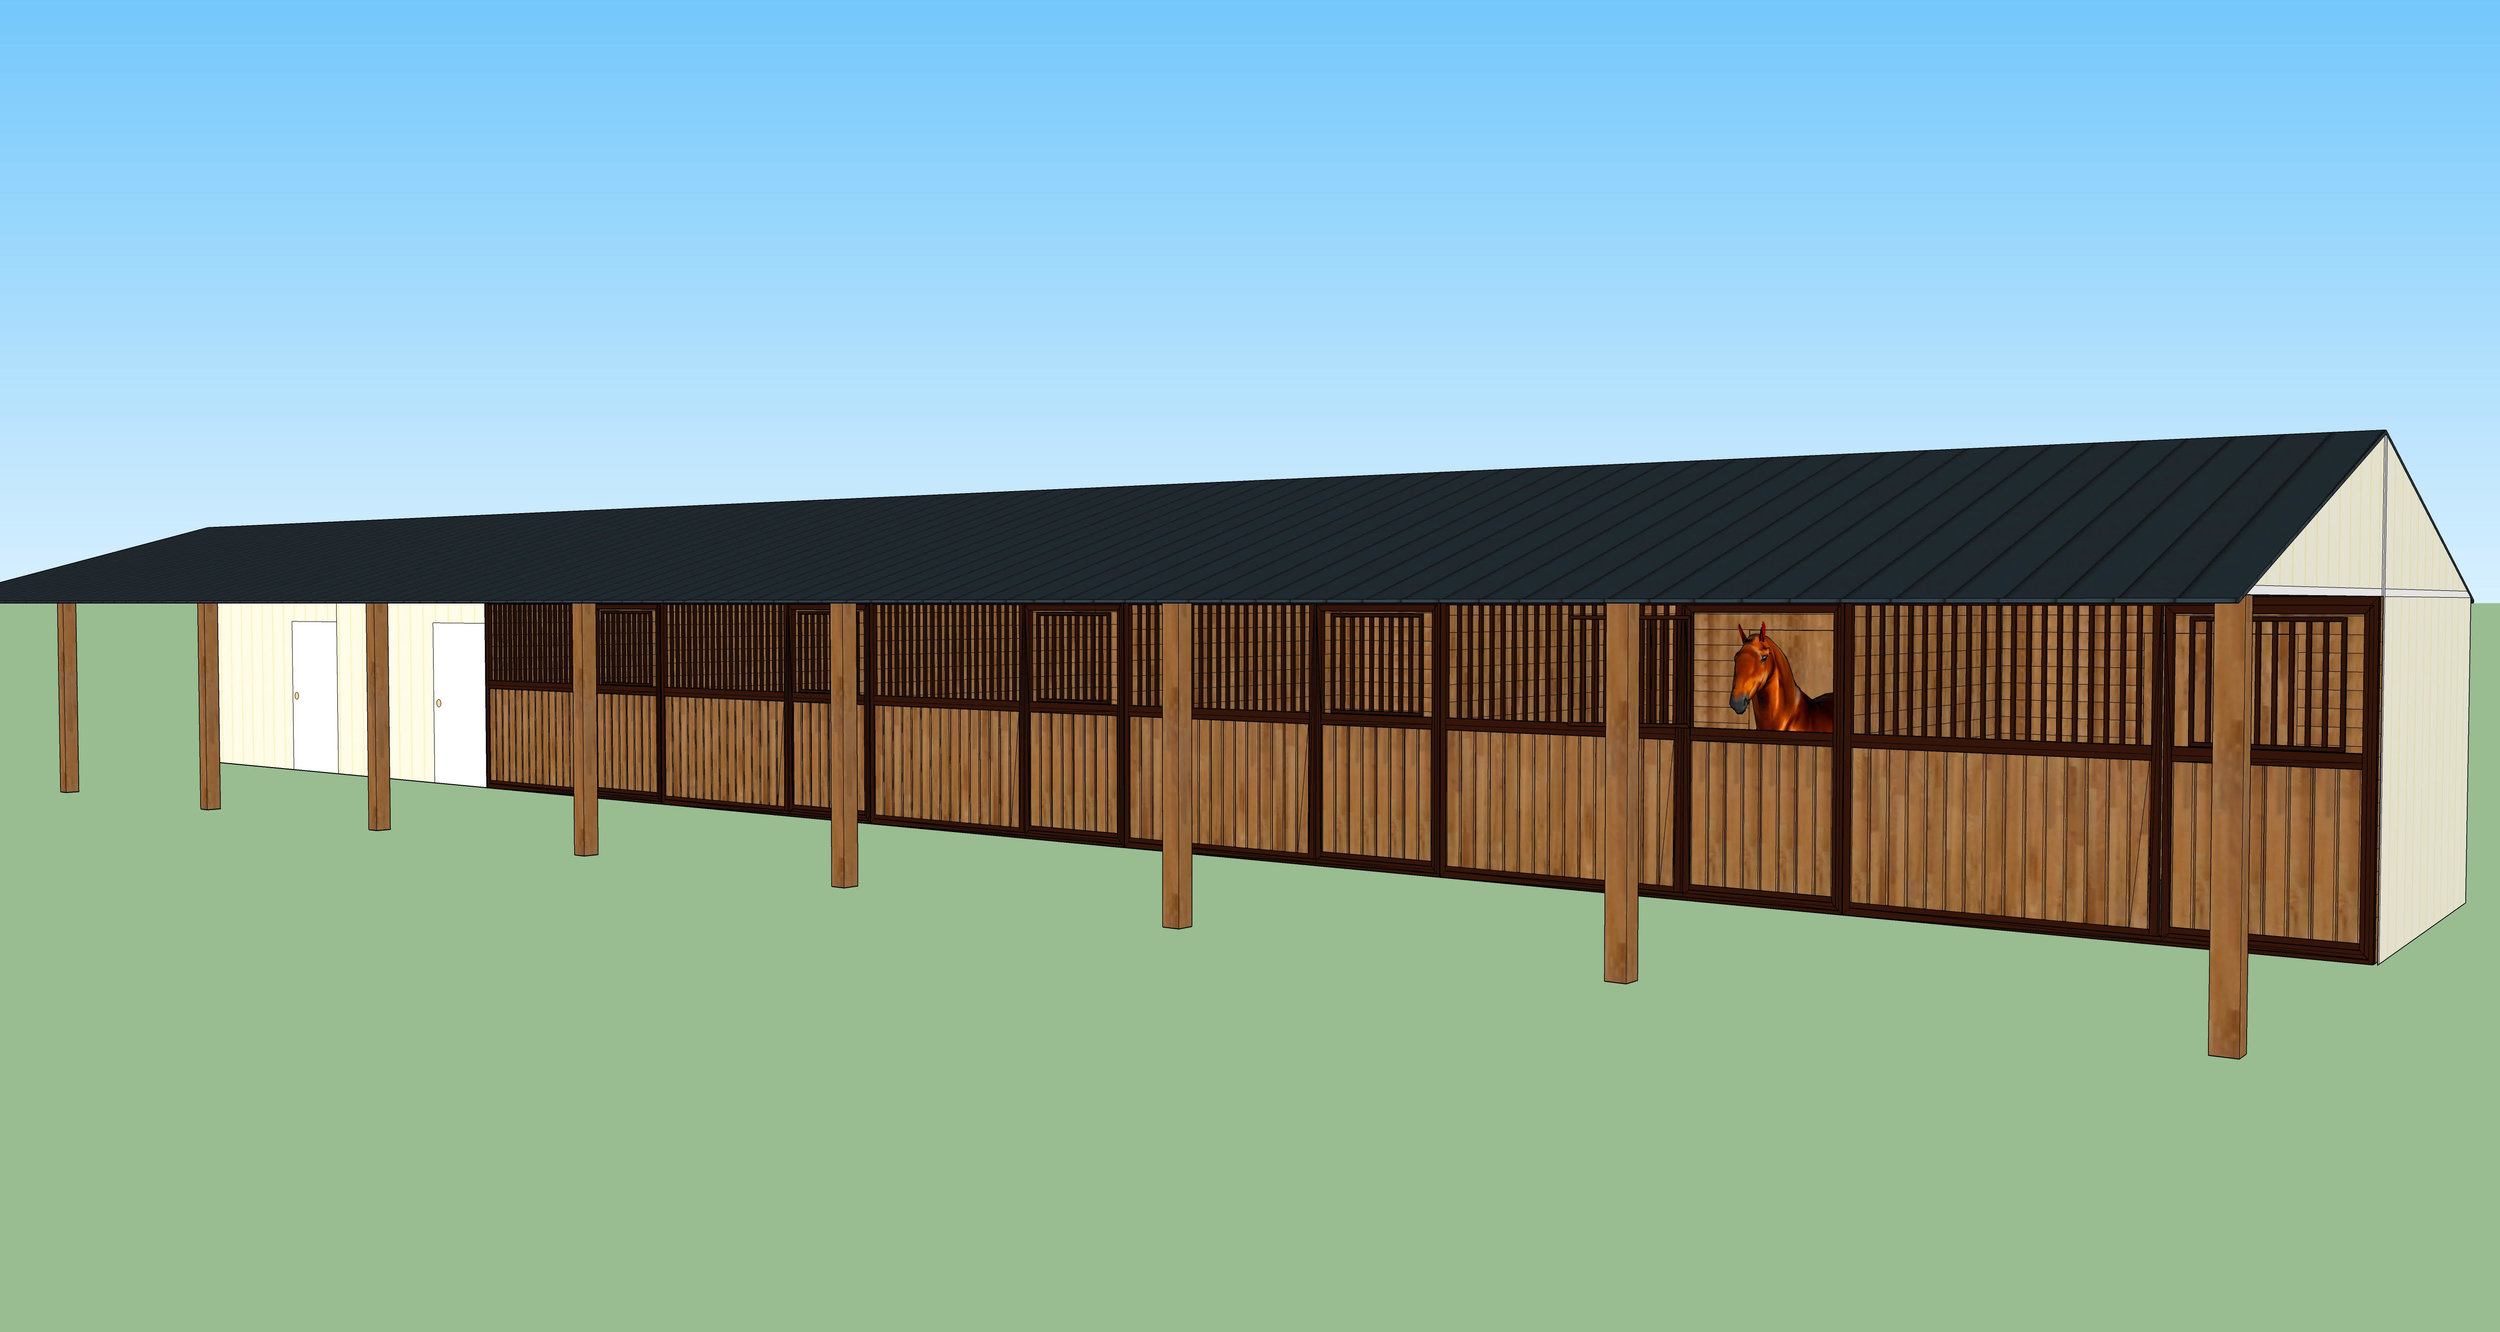 Proposed design - The Shed Row Barn will have a welcome area/office, tack room, and six stalls. It will back up to the dry lot so that the horses can come in and out of the stalls as needed. This style barn enables us to have a versatile, efficient space to welcome families, create safety and security for kids and horses, care for the horses more effectively, and store tack and supplies used in Sessions and Round Ups.